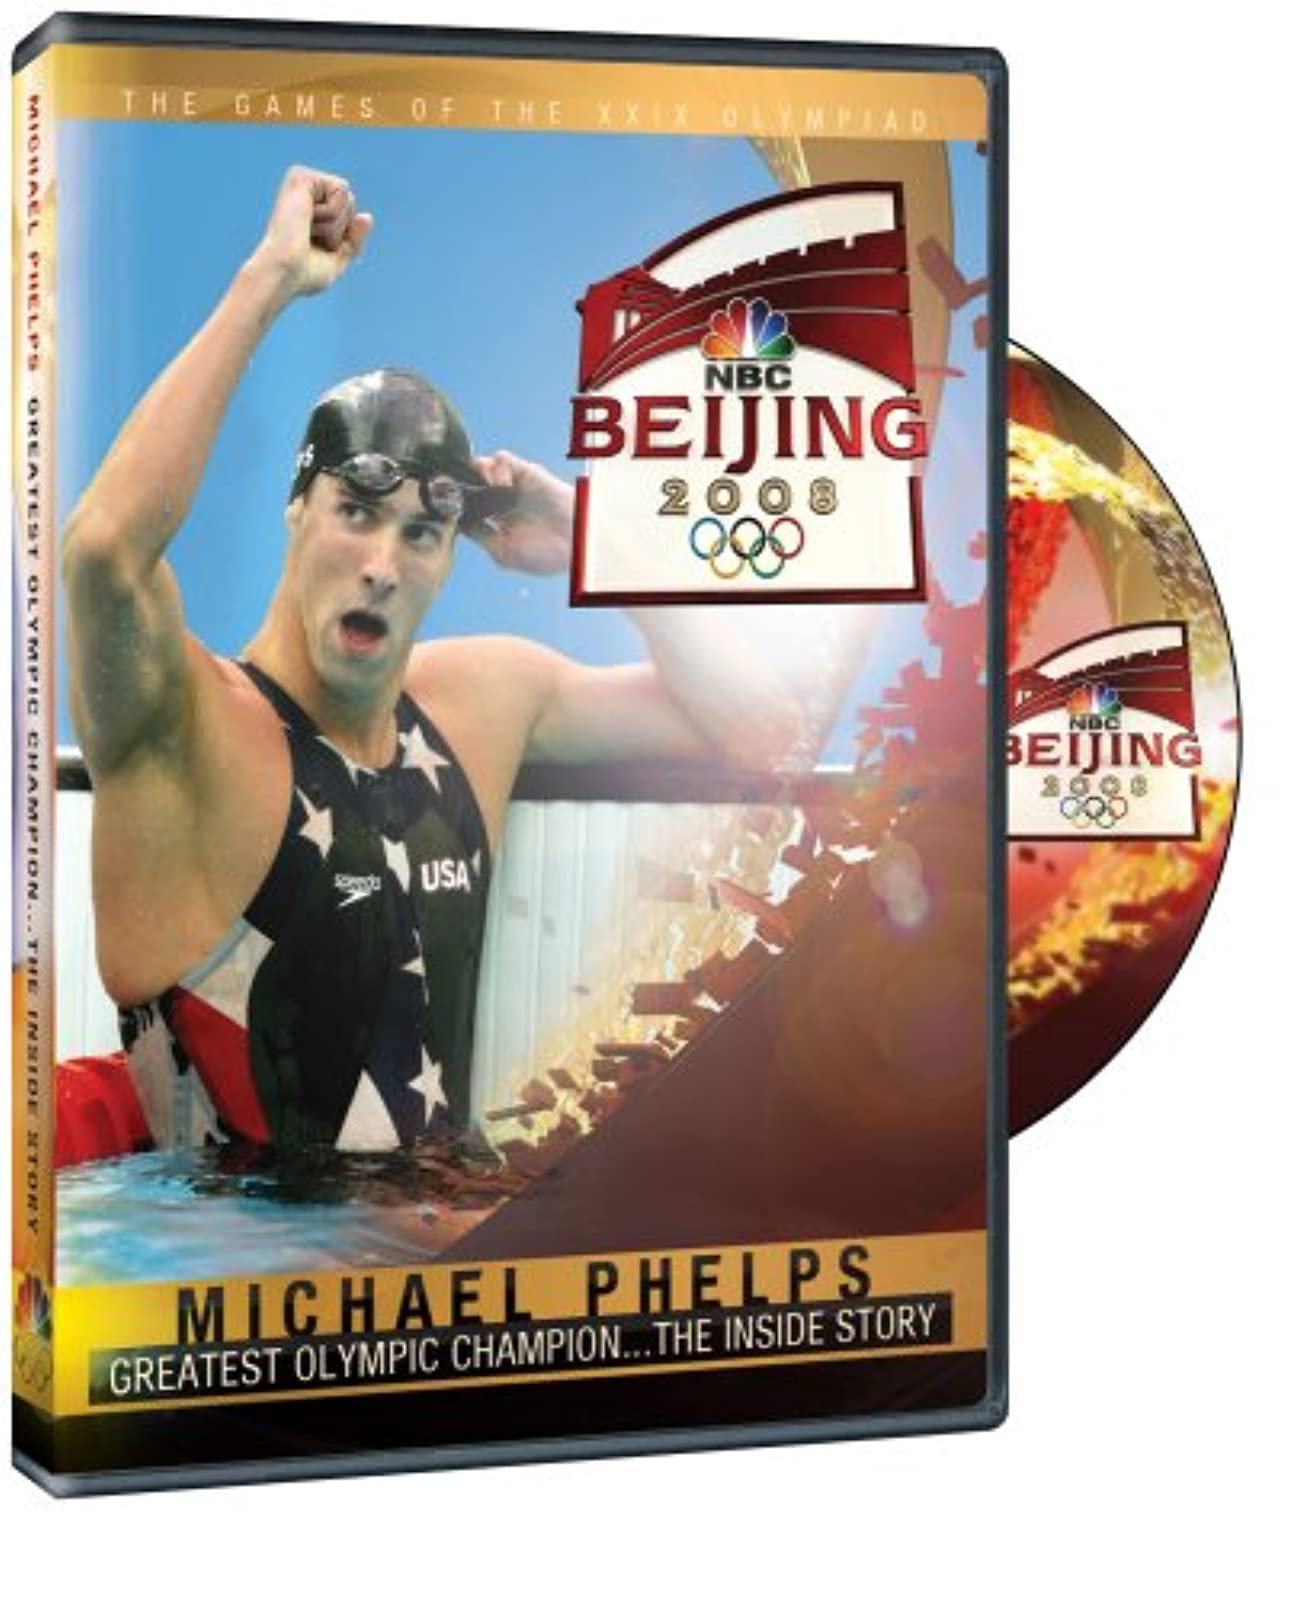 2008 Olympics: Michael Phelps Inside Story Of The Beijing Games On DVD